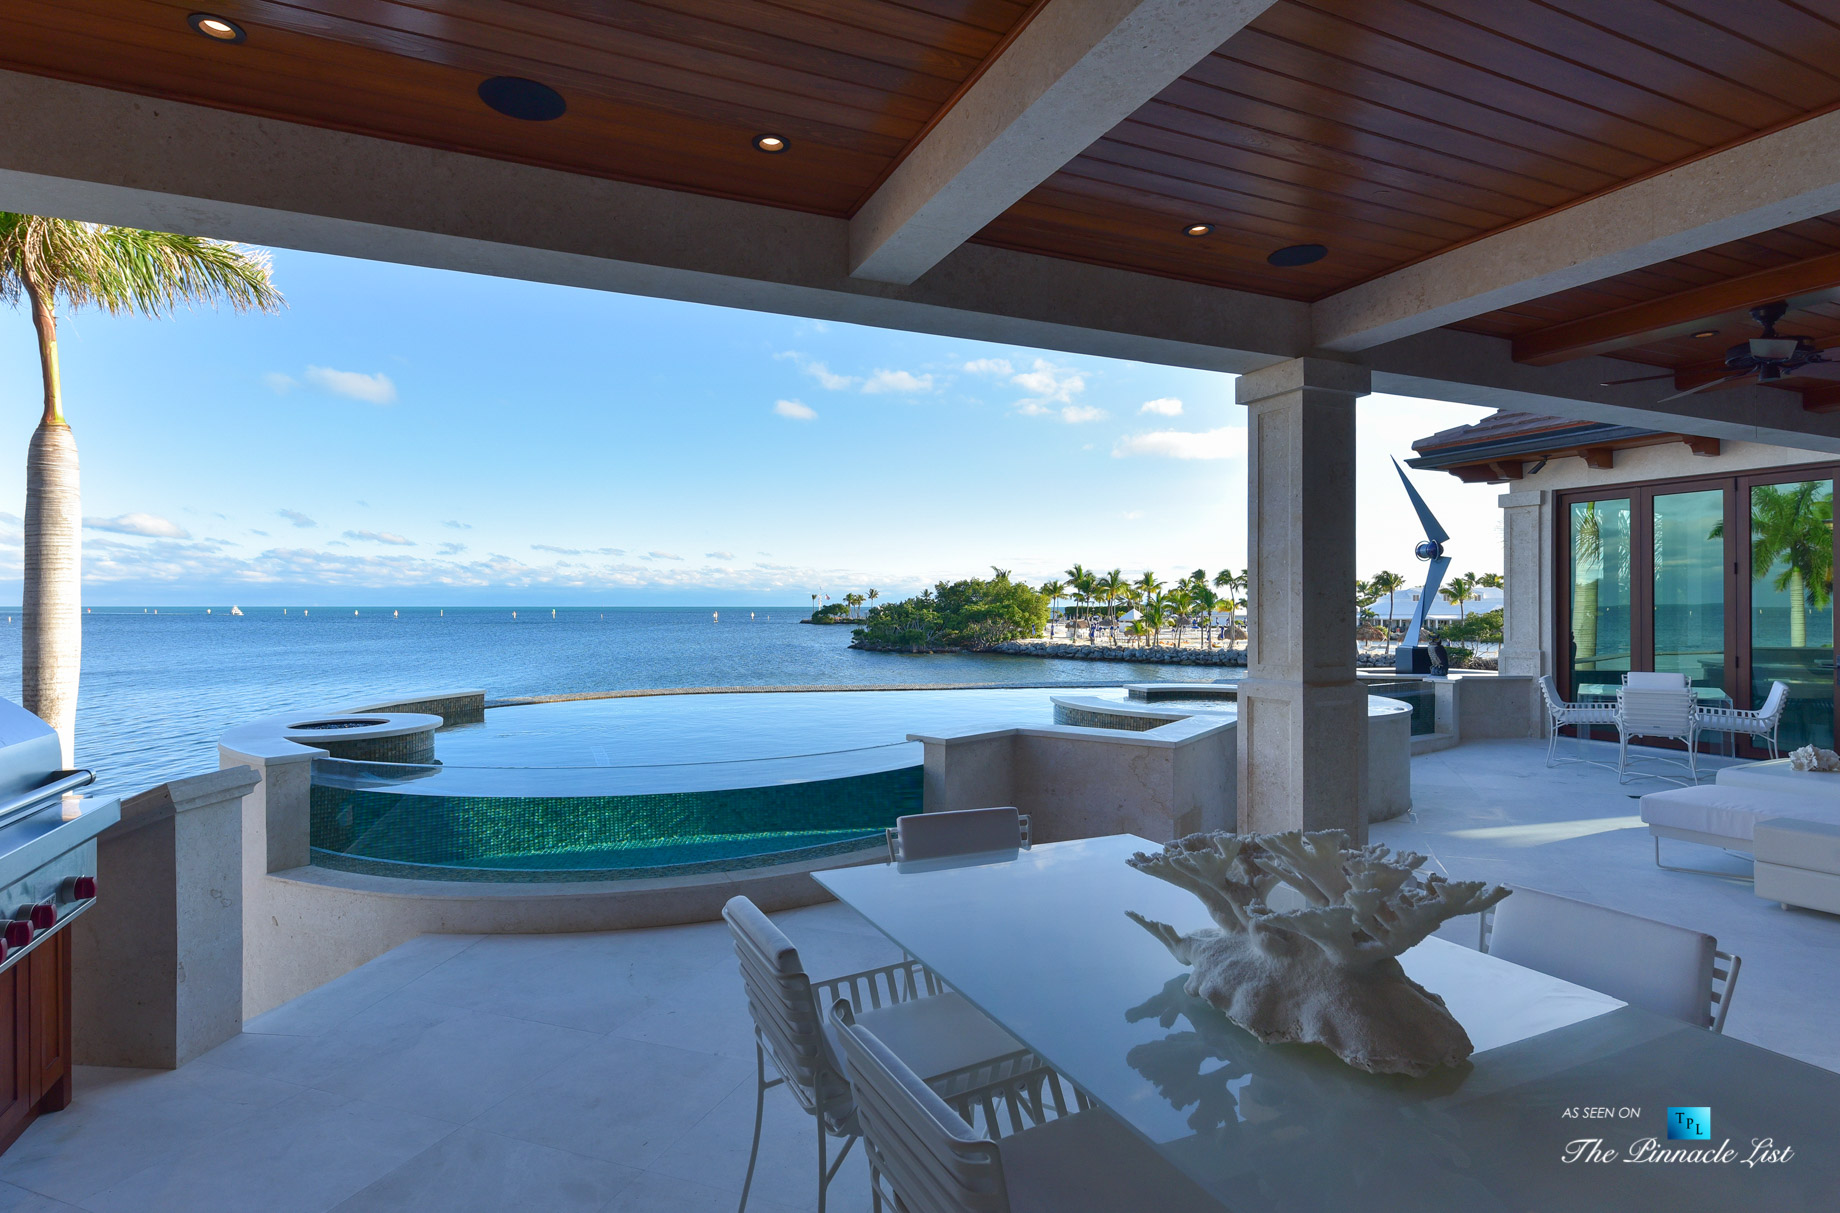 103 Andros Rd, Key Largo, FL, USA - Oceanfront Infinity Pool Deck and Hot Tub - Luxury Real Estate - Ocean Reef Club Home